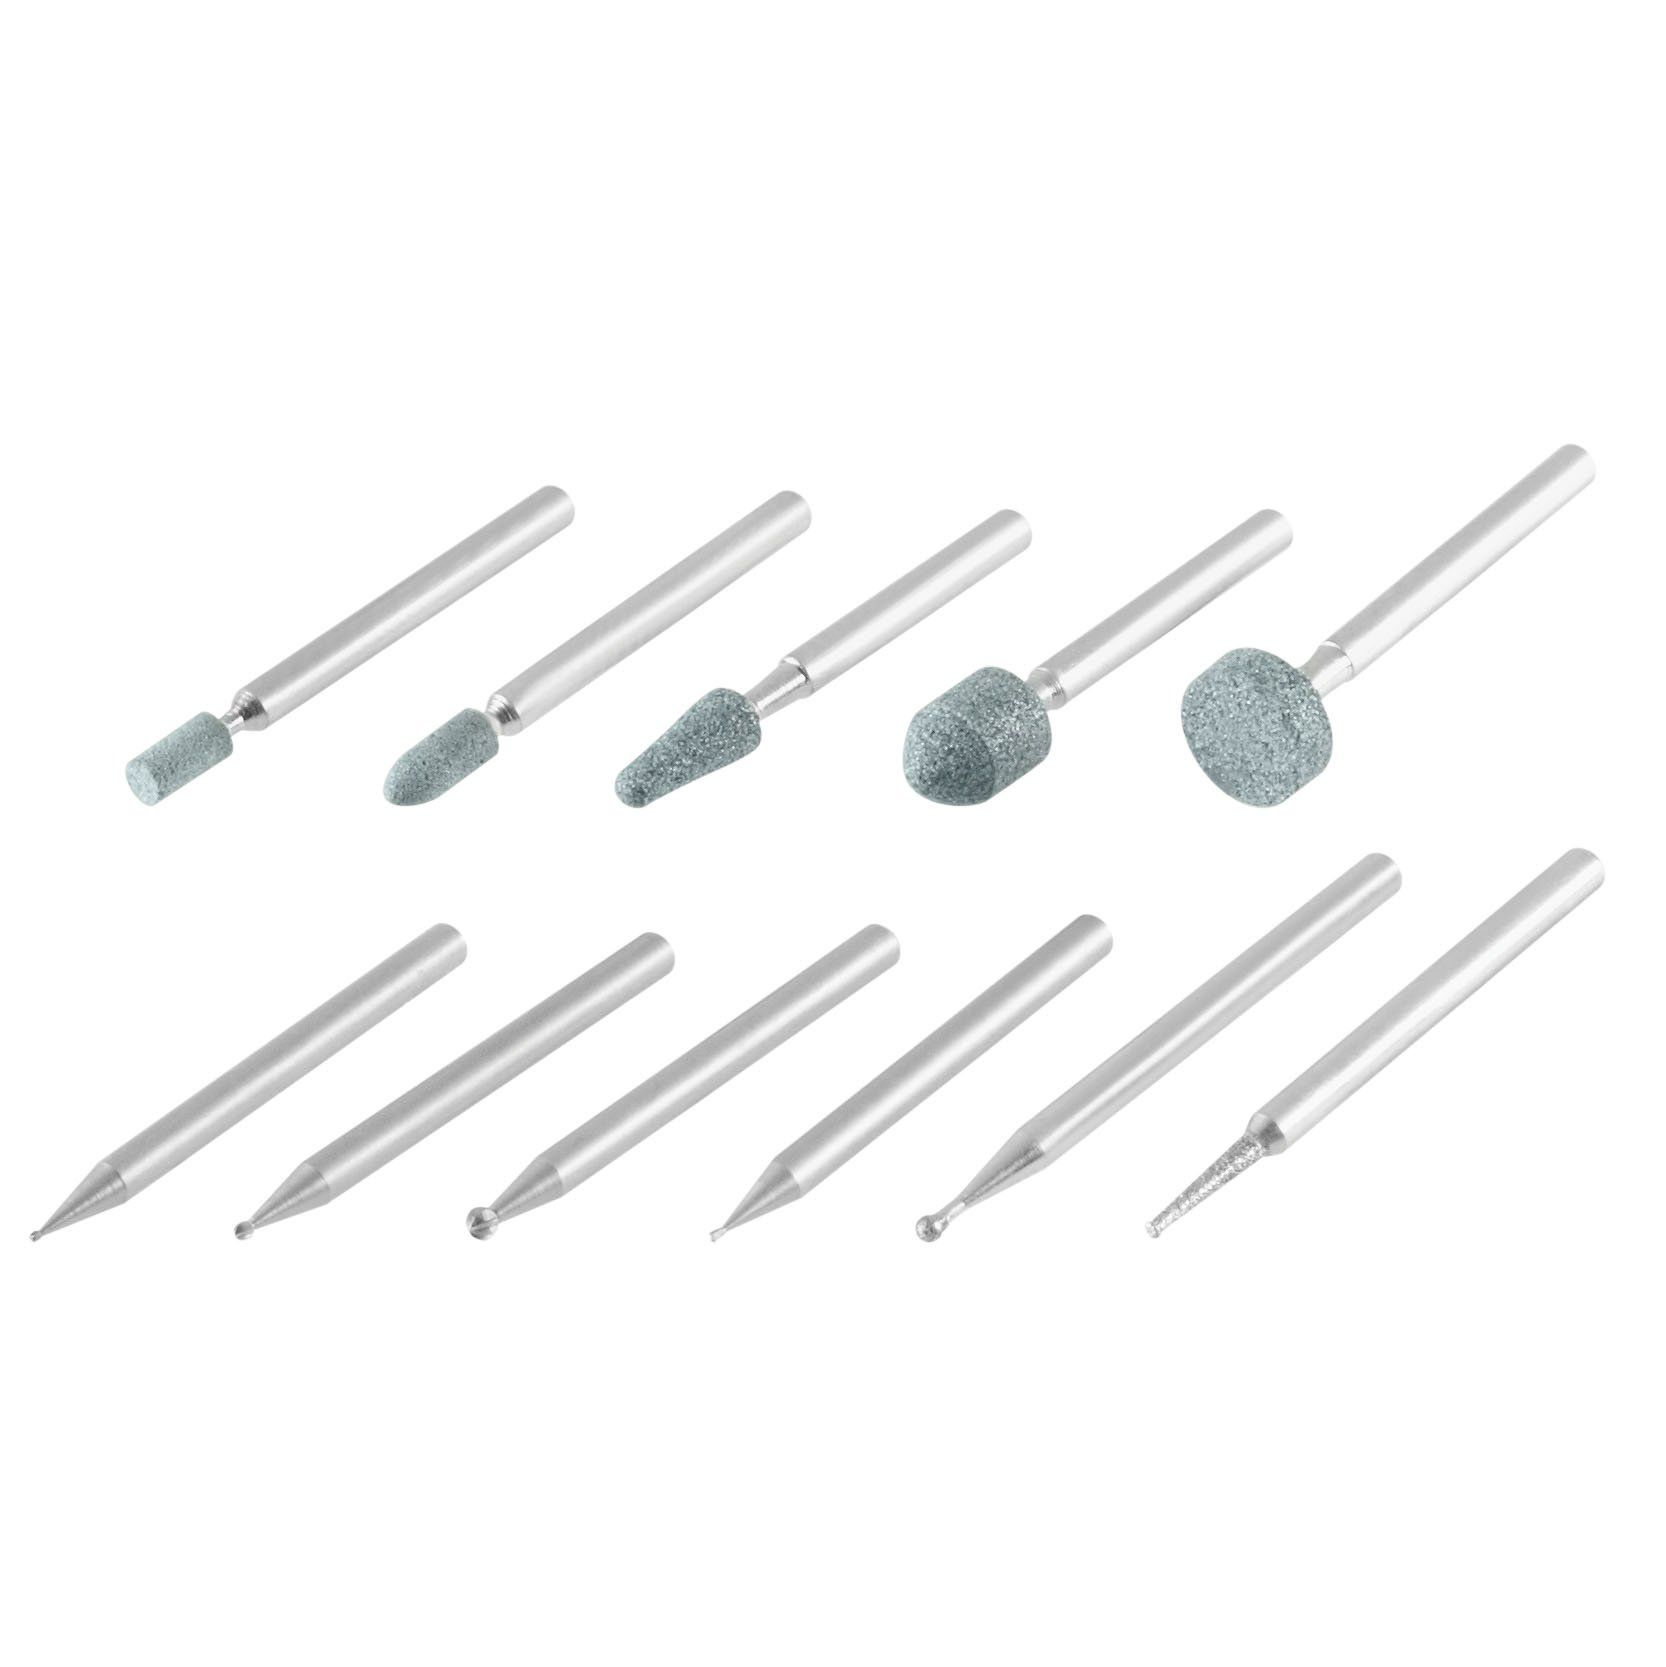 Dremel 689 01 11 Piece Rotary Tool Carving And Engraving Kit Dremel Bits Dremel Accessories Dremel Carving